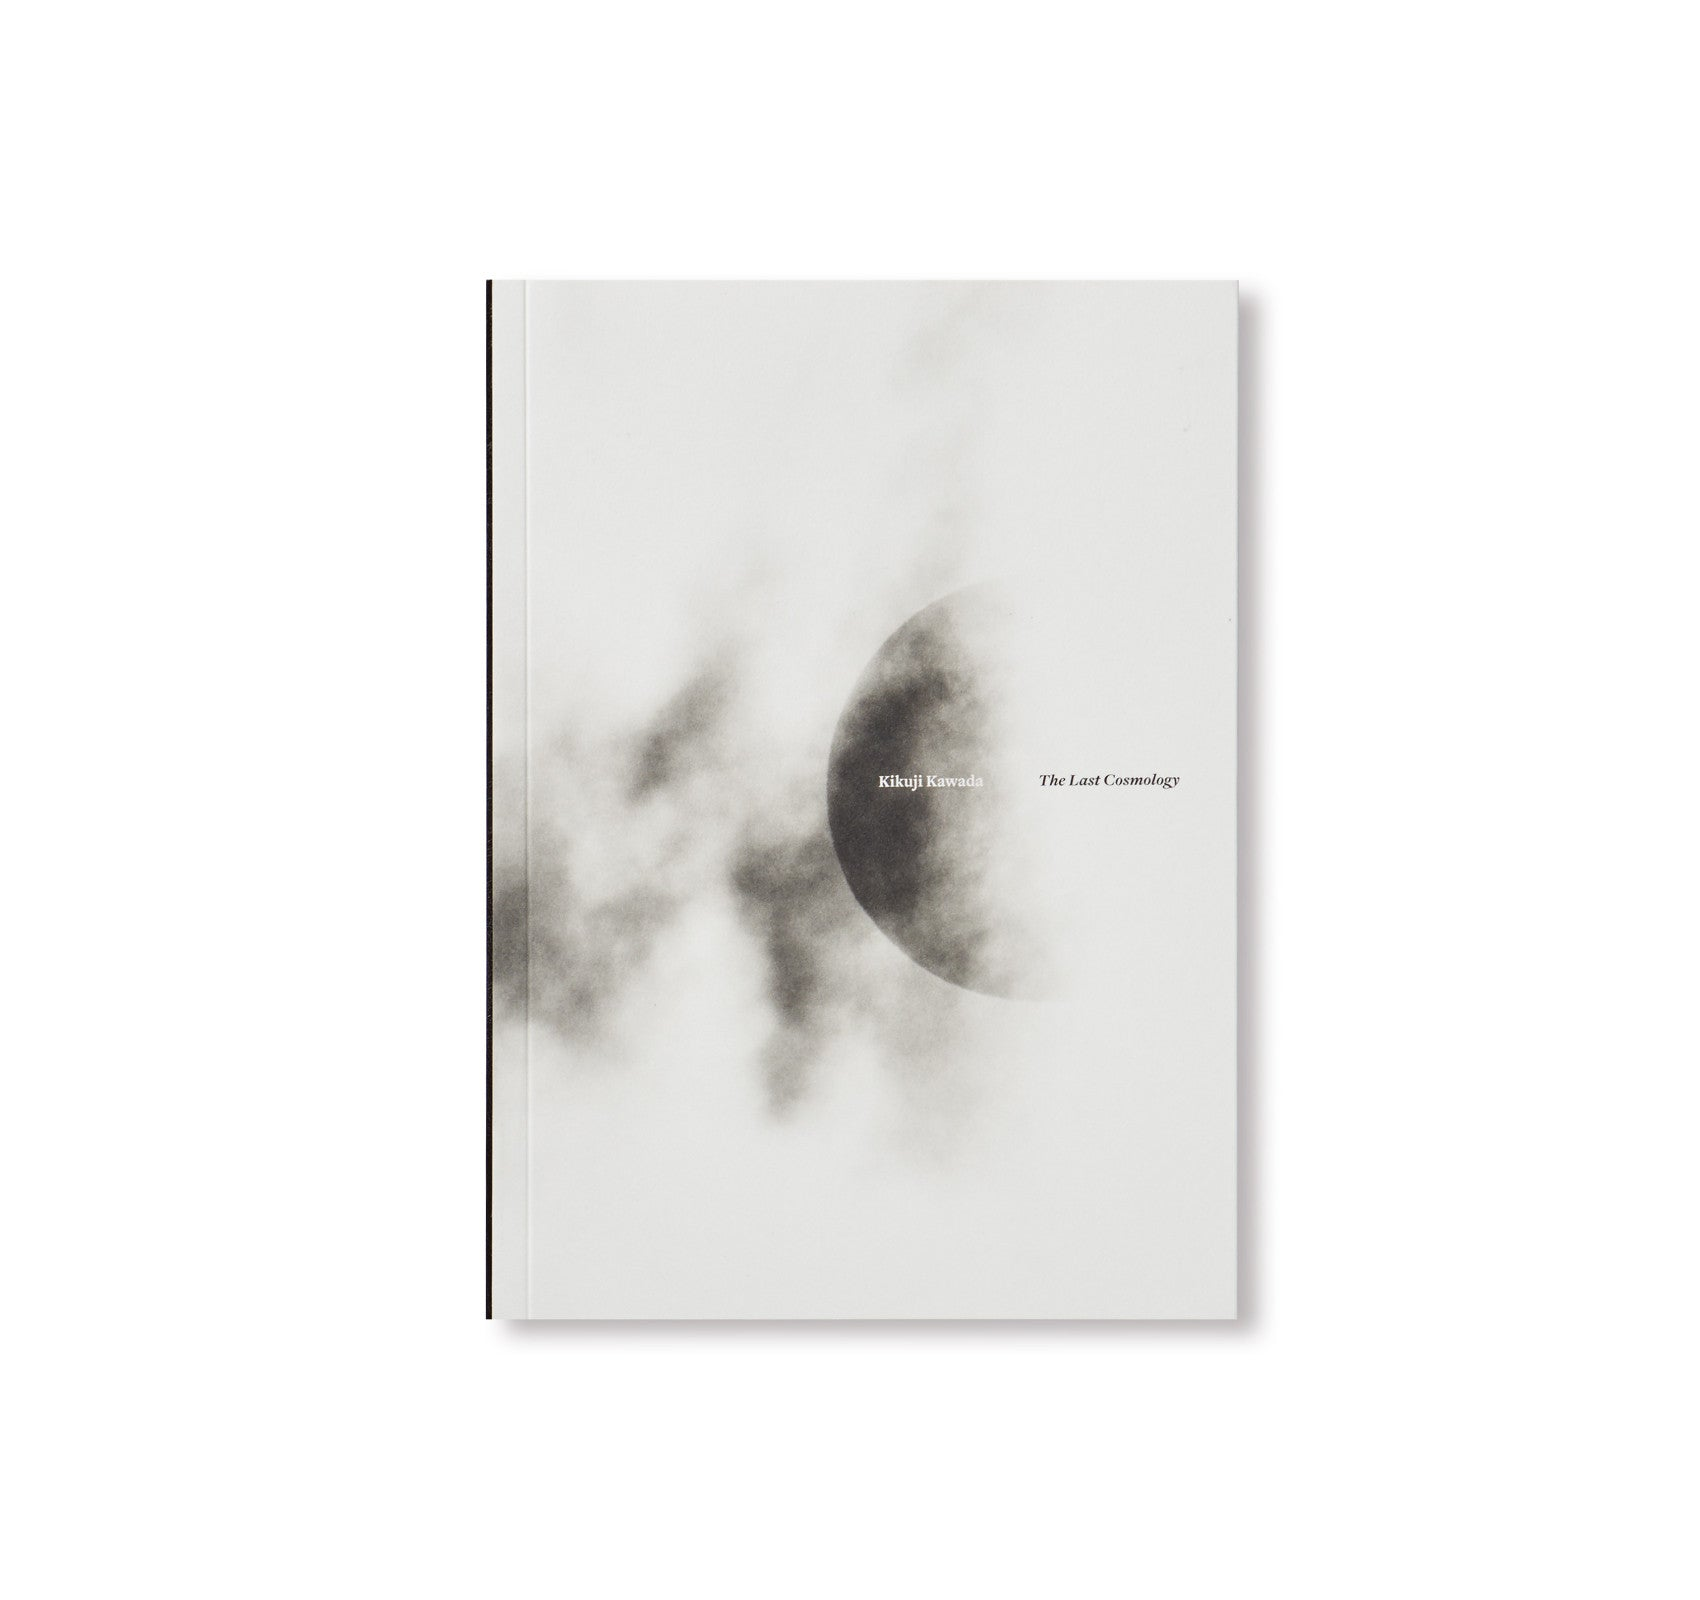 THE LAST COSMOLOGY by Kikuji Kawada [SIGNED]